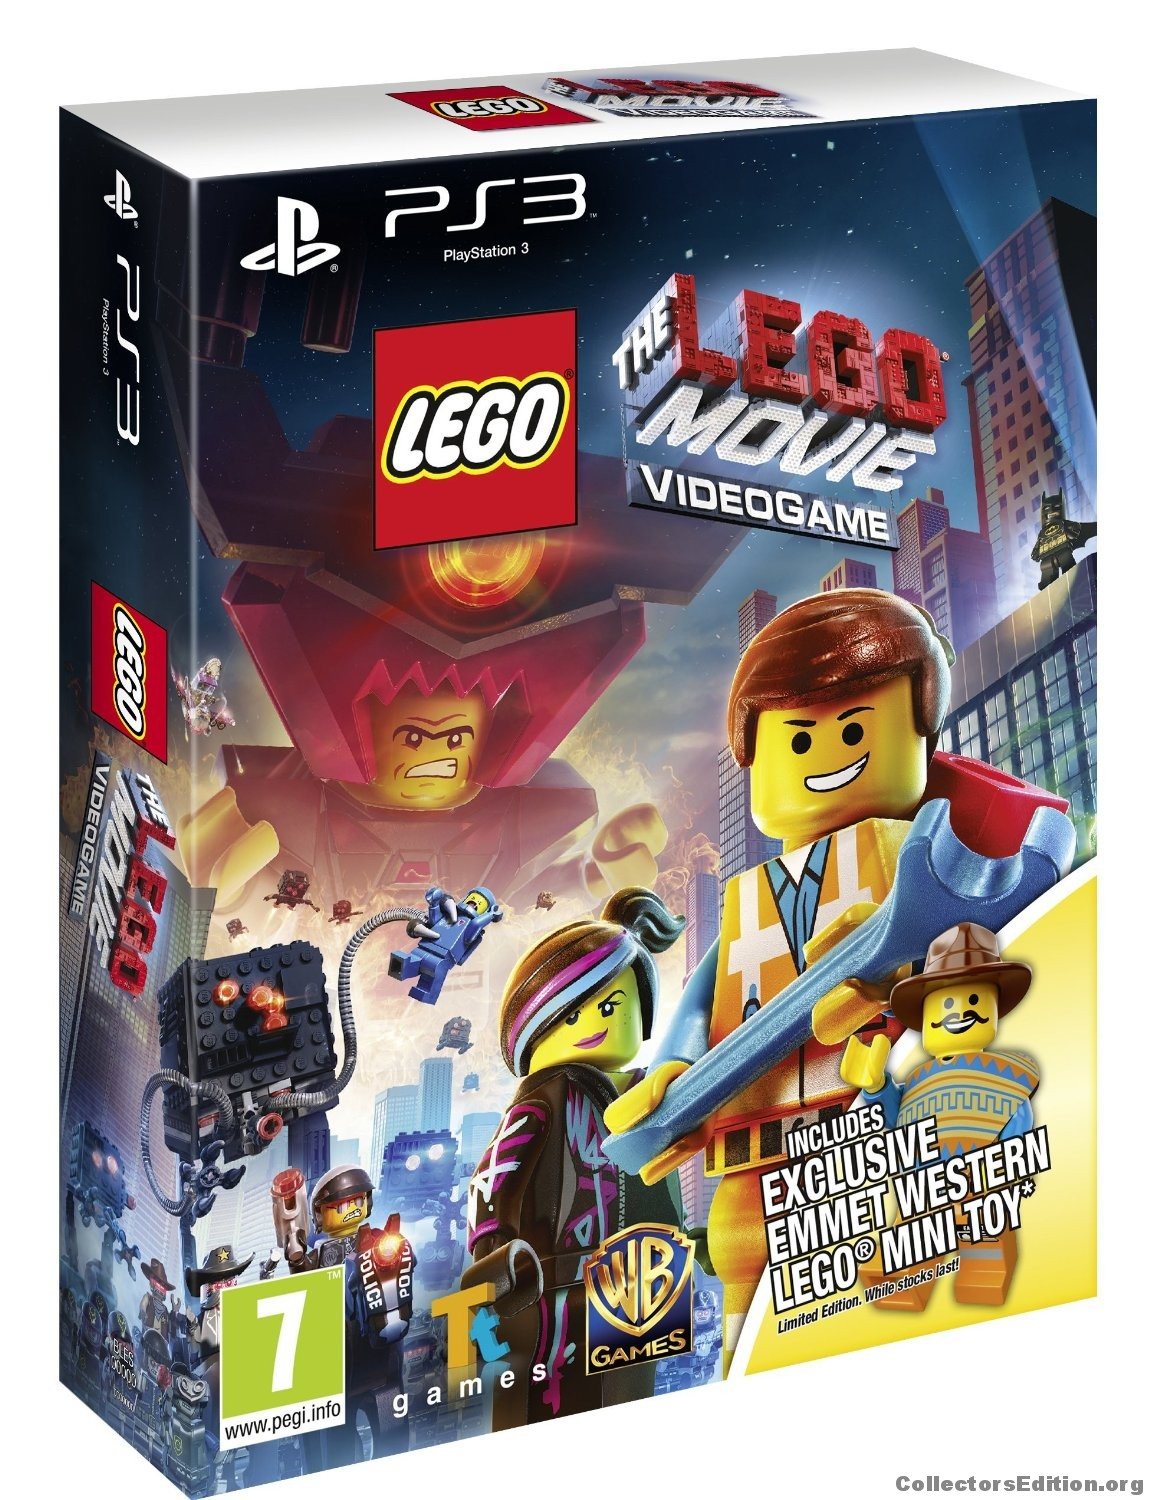 CollectorsEdition.org » The LEGO Movie Videogame (Western ...